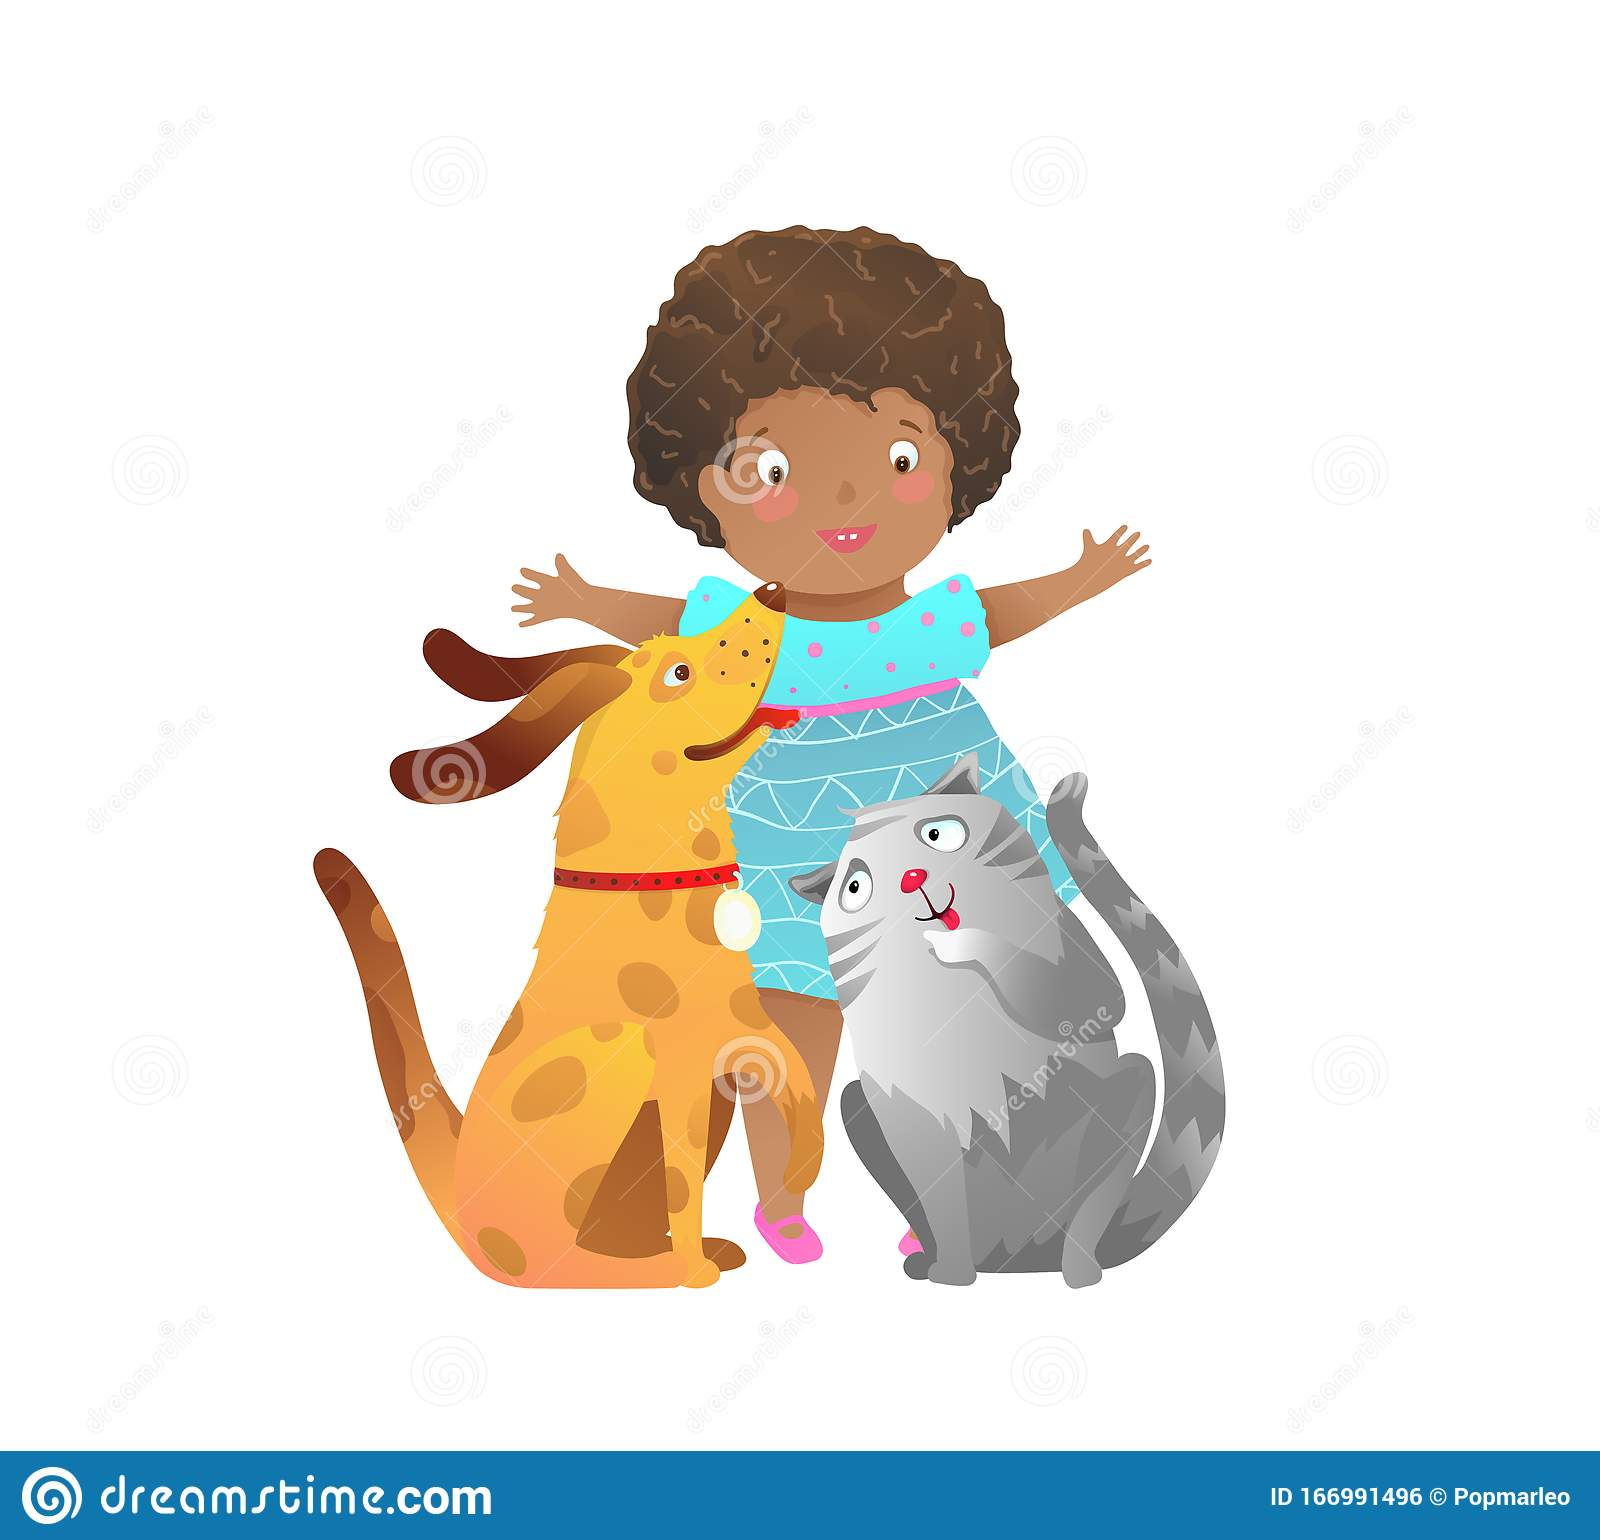 African American Child Girl With Cat And Dog Playing Together Happy Friends Stock Vector Illustration Of Kitten Game 166991496